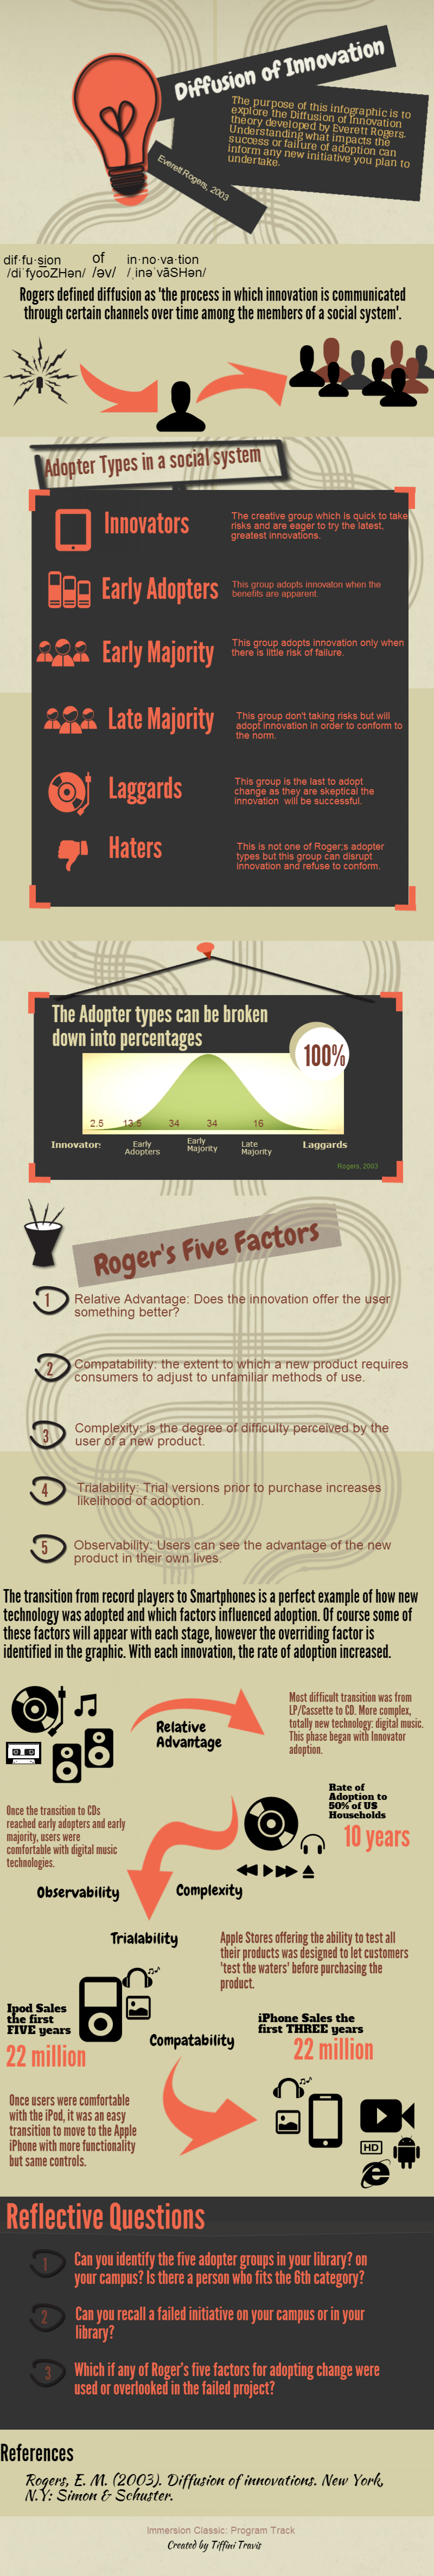 Roger's Diffusion of Innovation Infographic